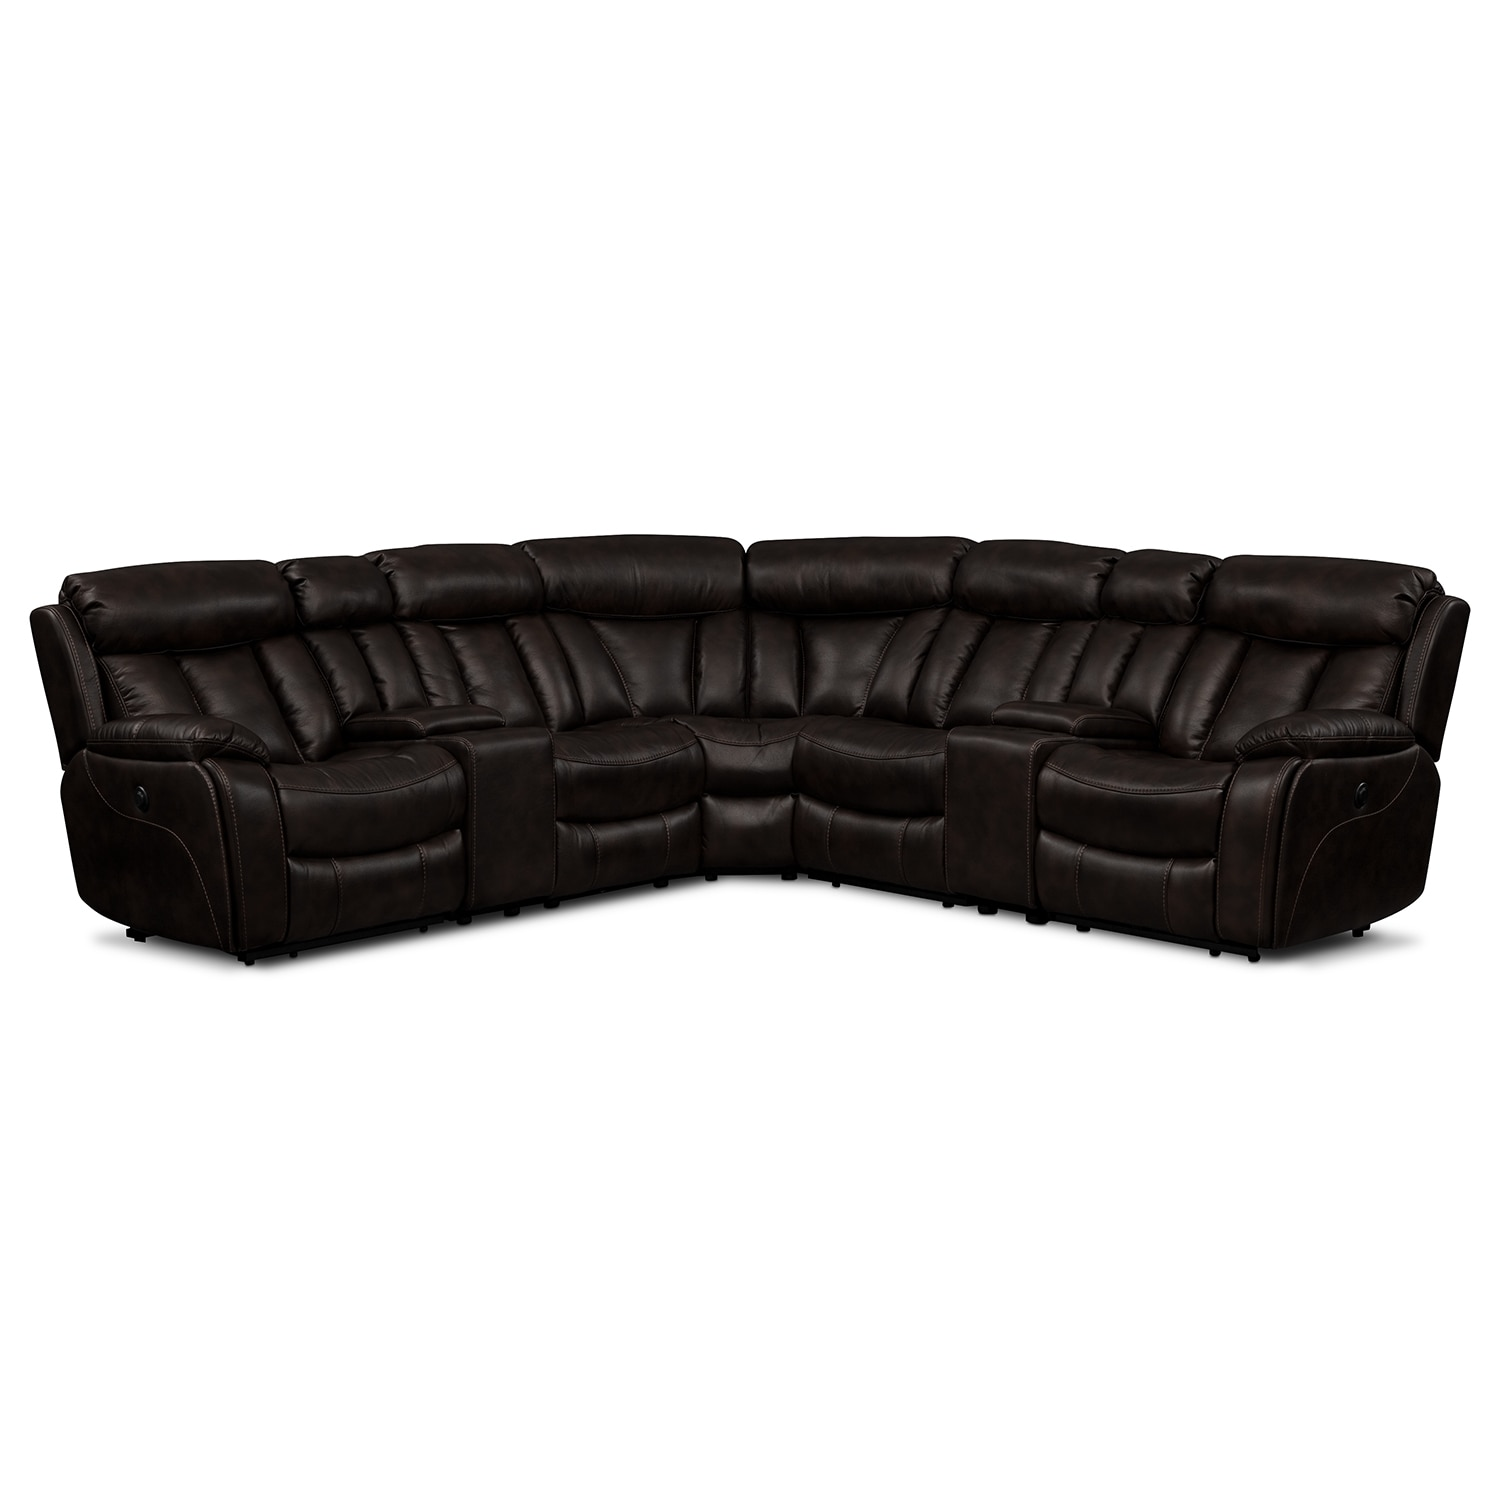 Sectional Couches With Recliners sectional sofas | value city furniture | value city furniture